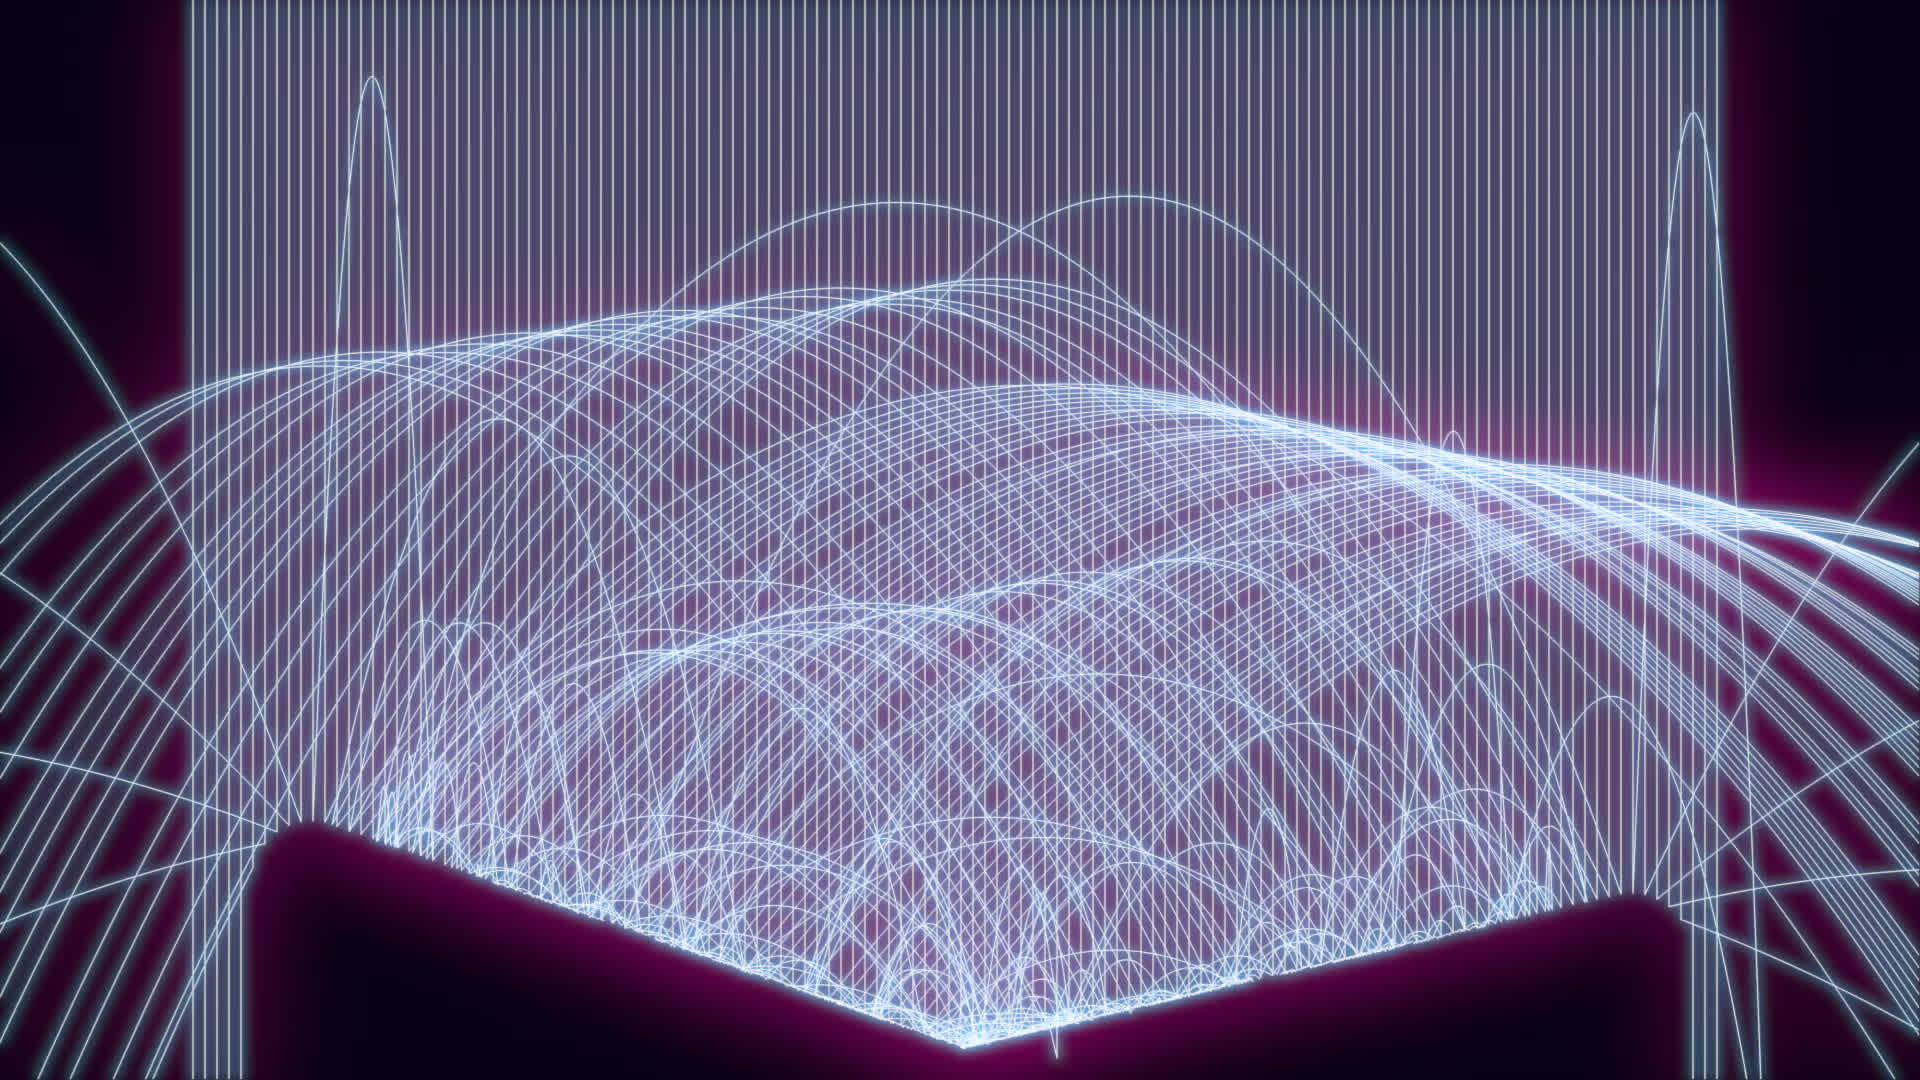 gamedevscreens, Particle physics - needs work GIFs